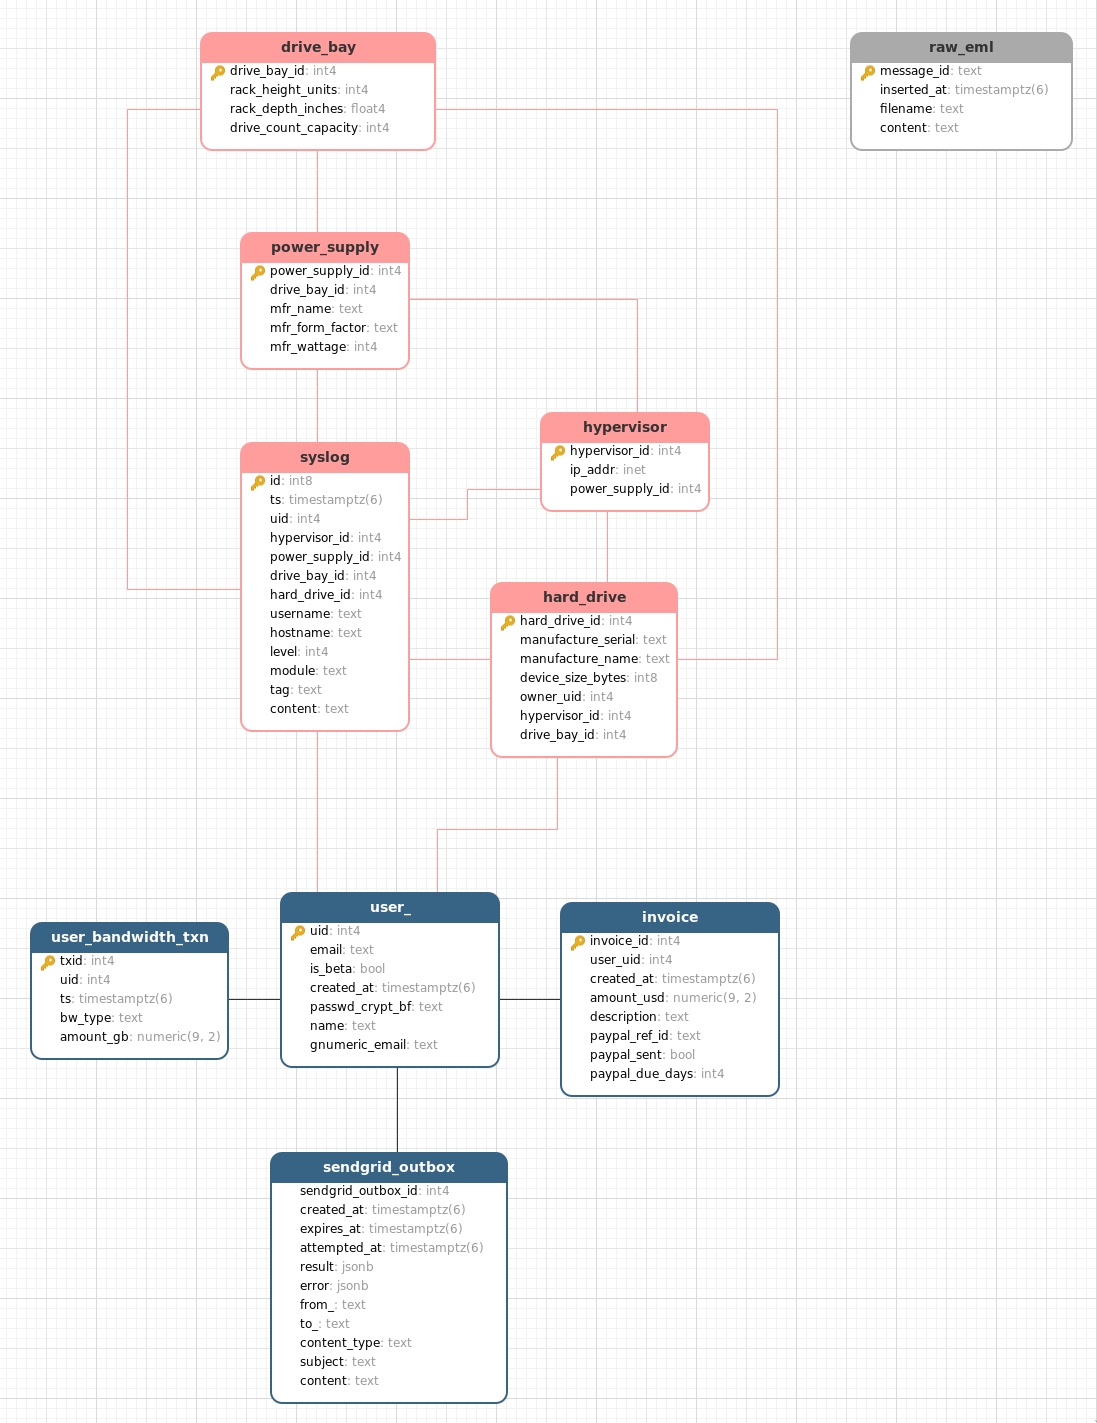 Diagram of the SQL schema in production.